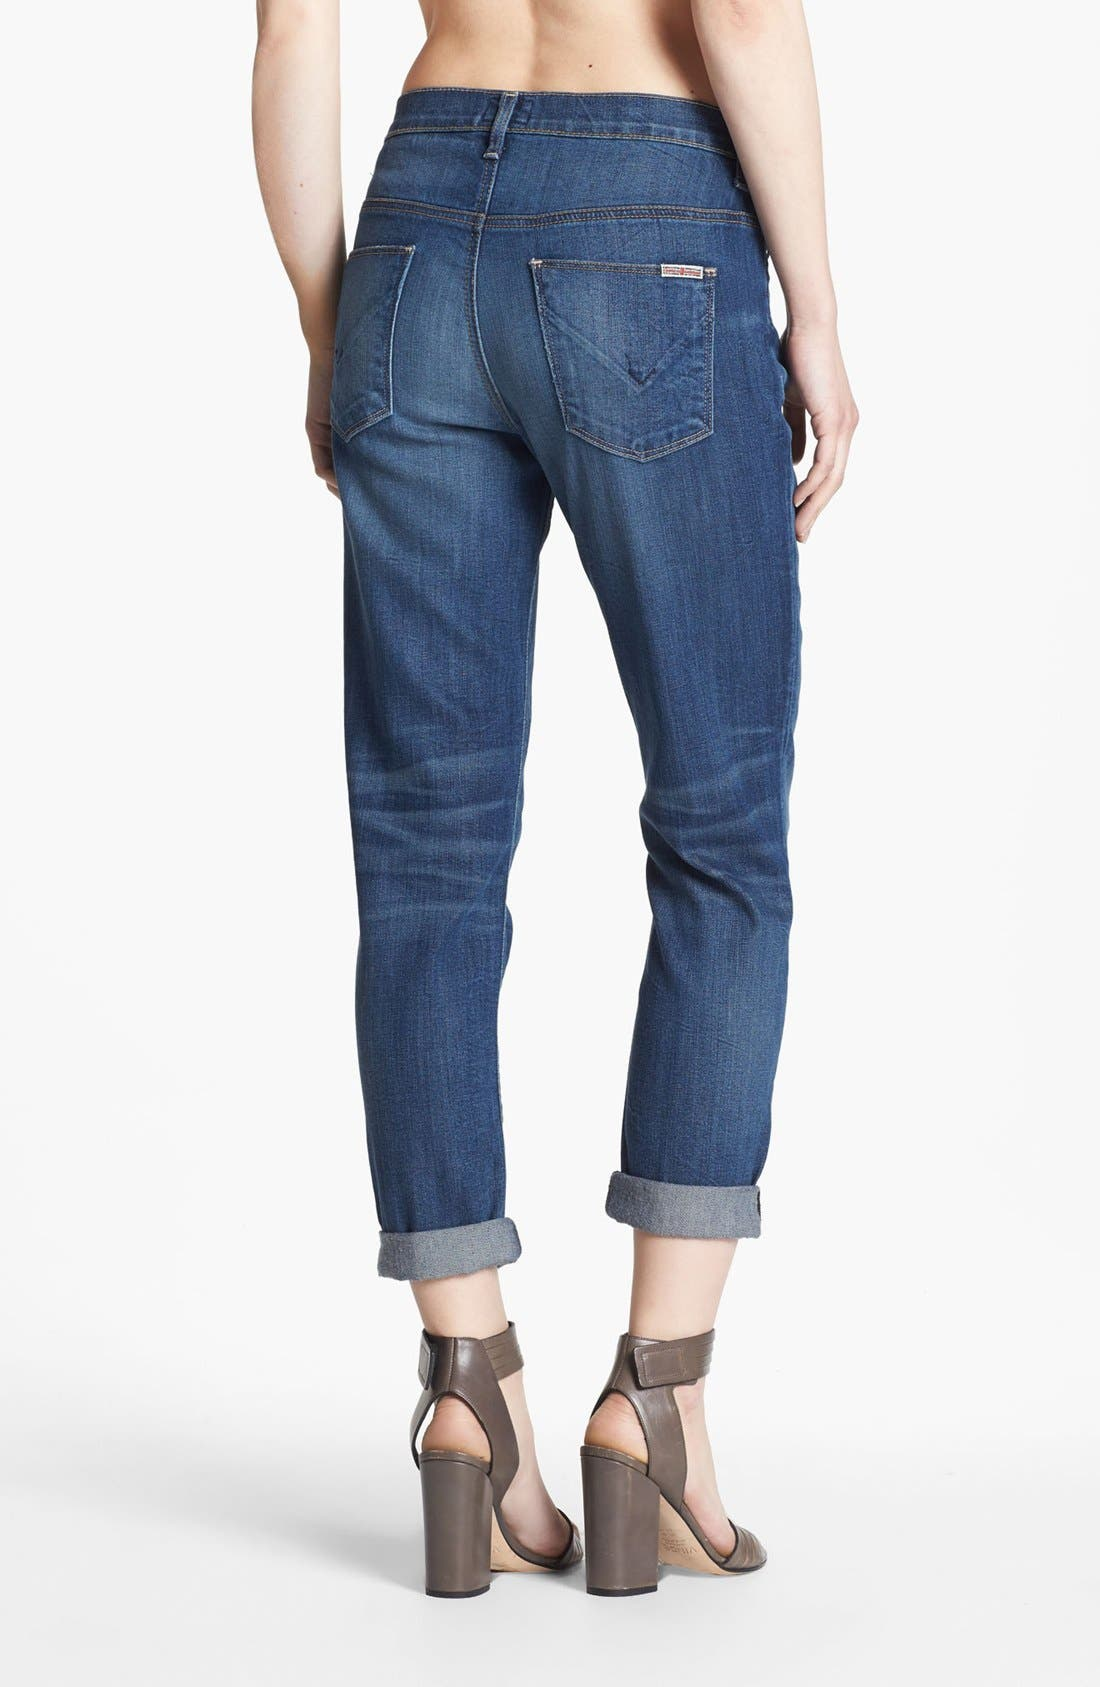 Alternate Image 2  - Hudson Jeans 'Leigh' Boyfriend Jeans (Youth Vintage)